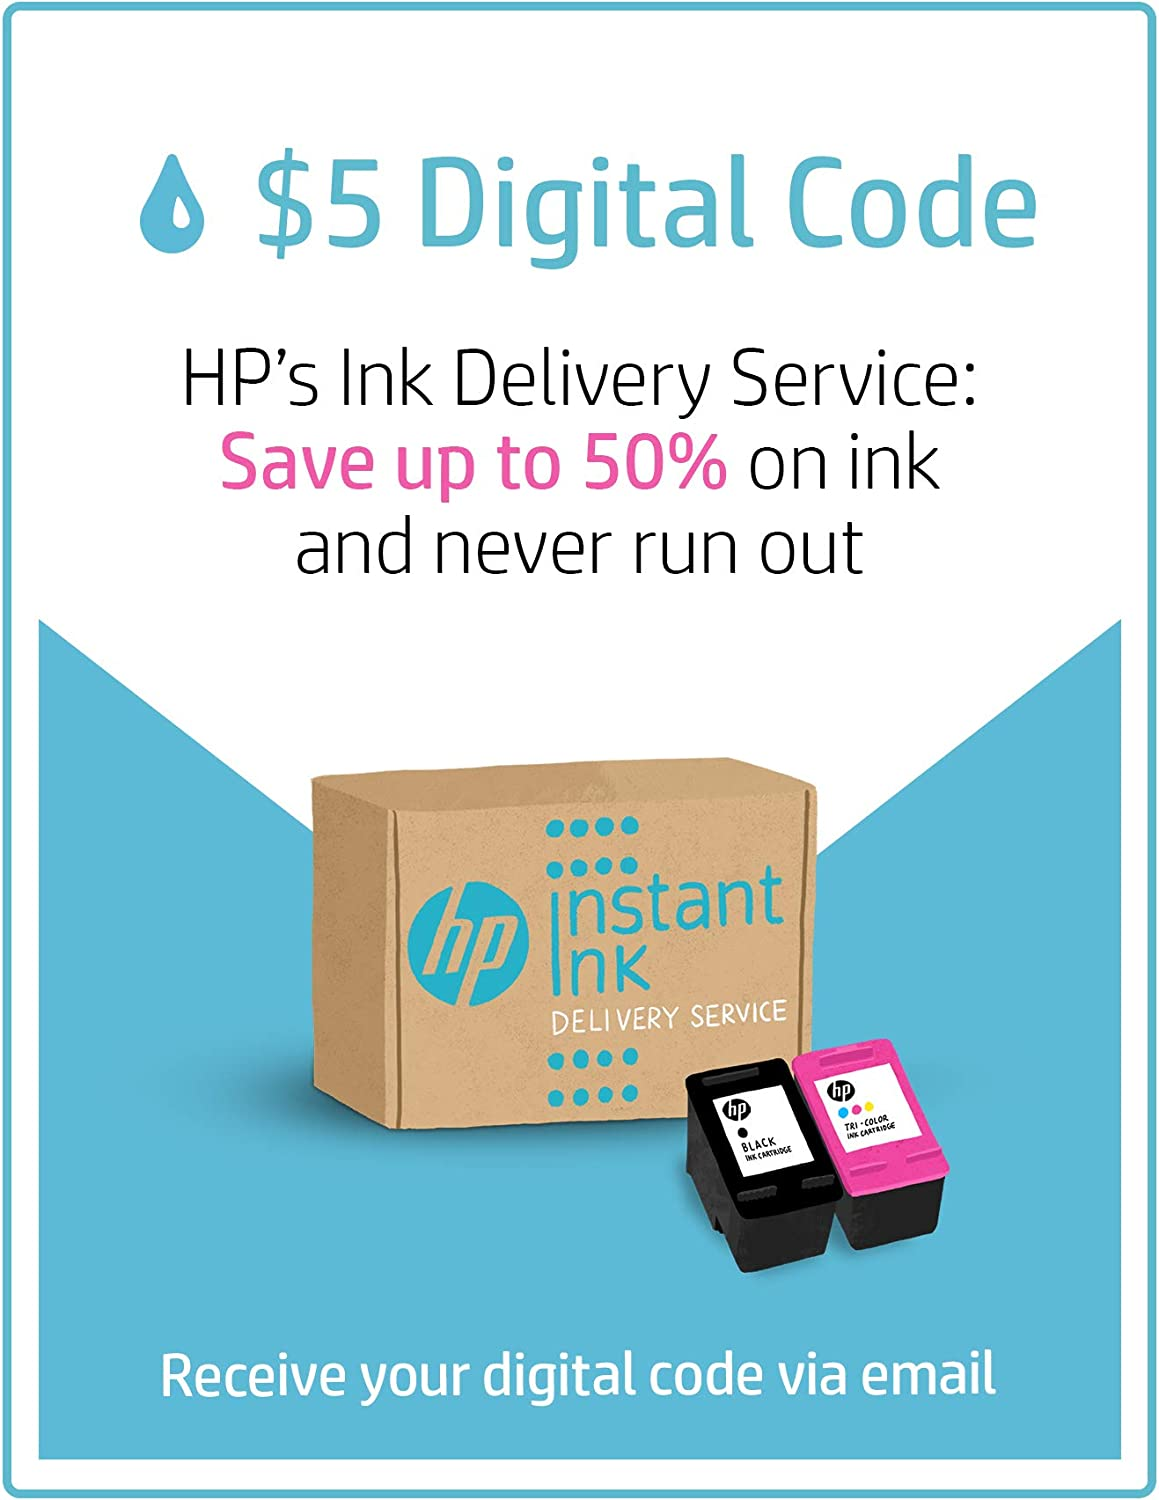 HP Instant Ink $5 Prepaid Code, use to enroll in HP Instant Ink, HPs Ink Delivery Service [Online Code]